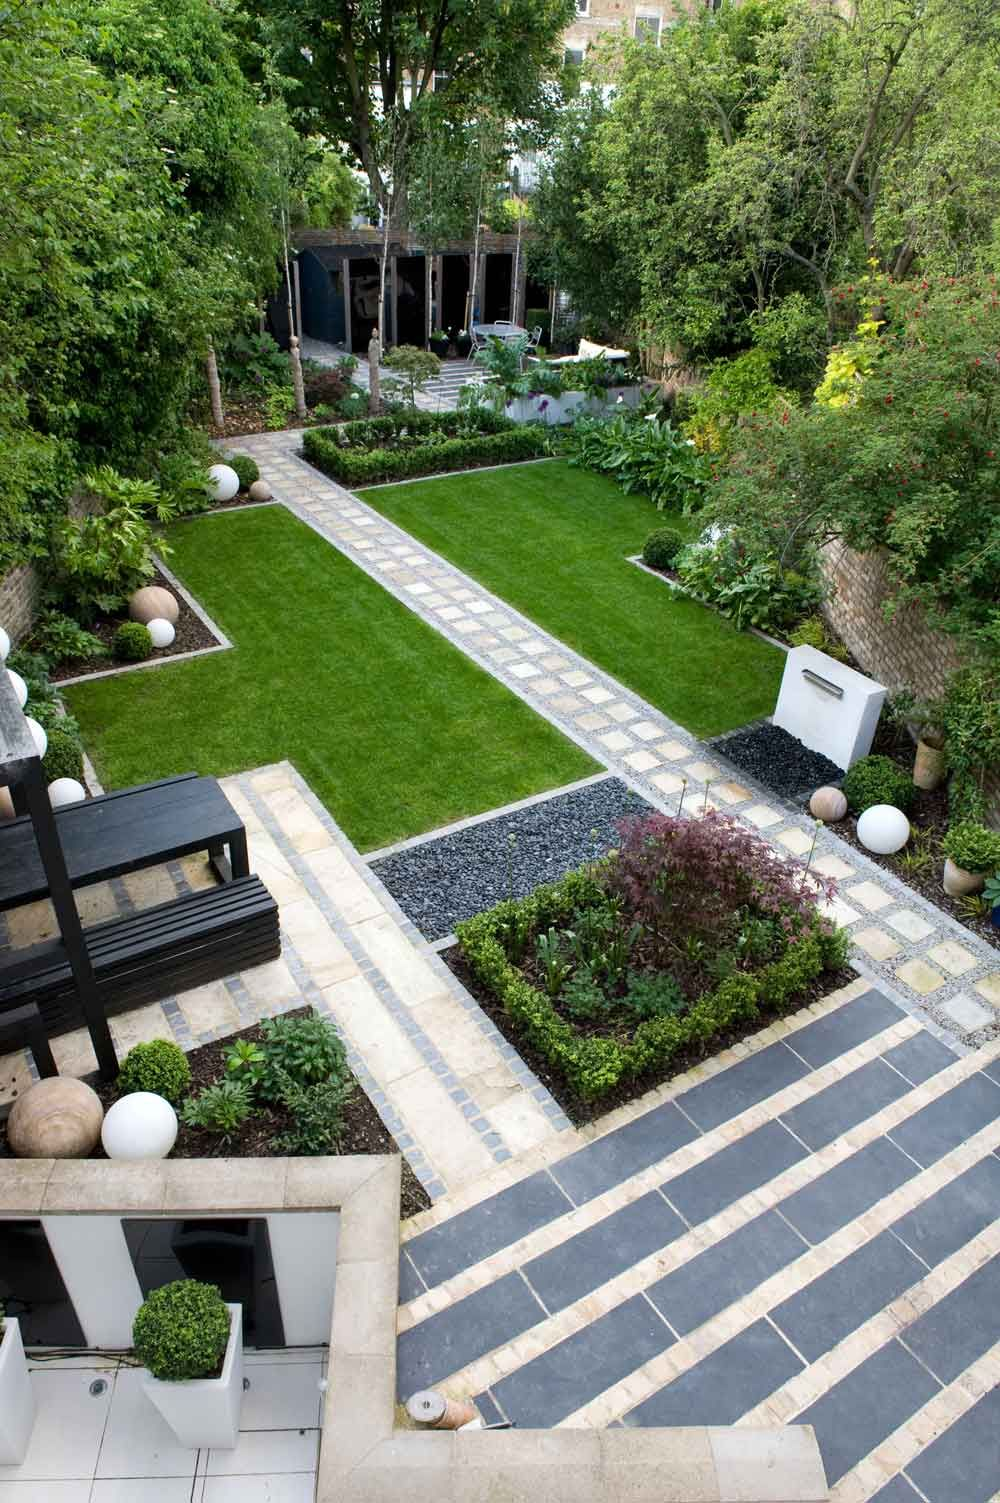 Before & After A Modern Japanese Garden in North London